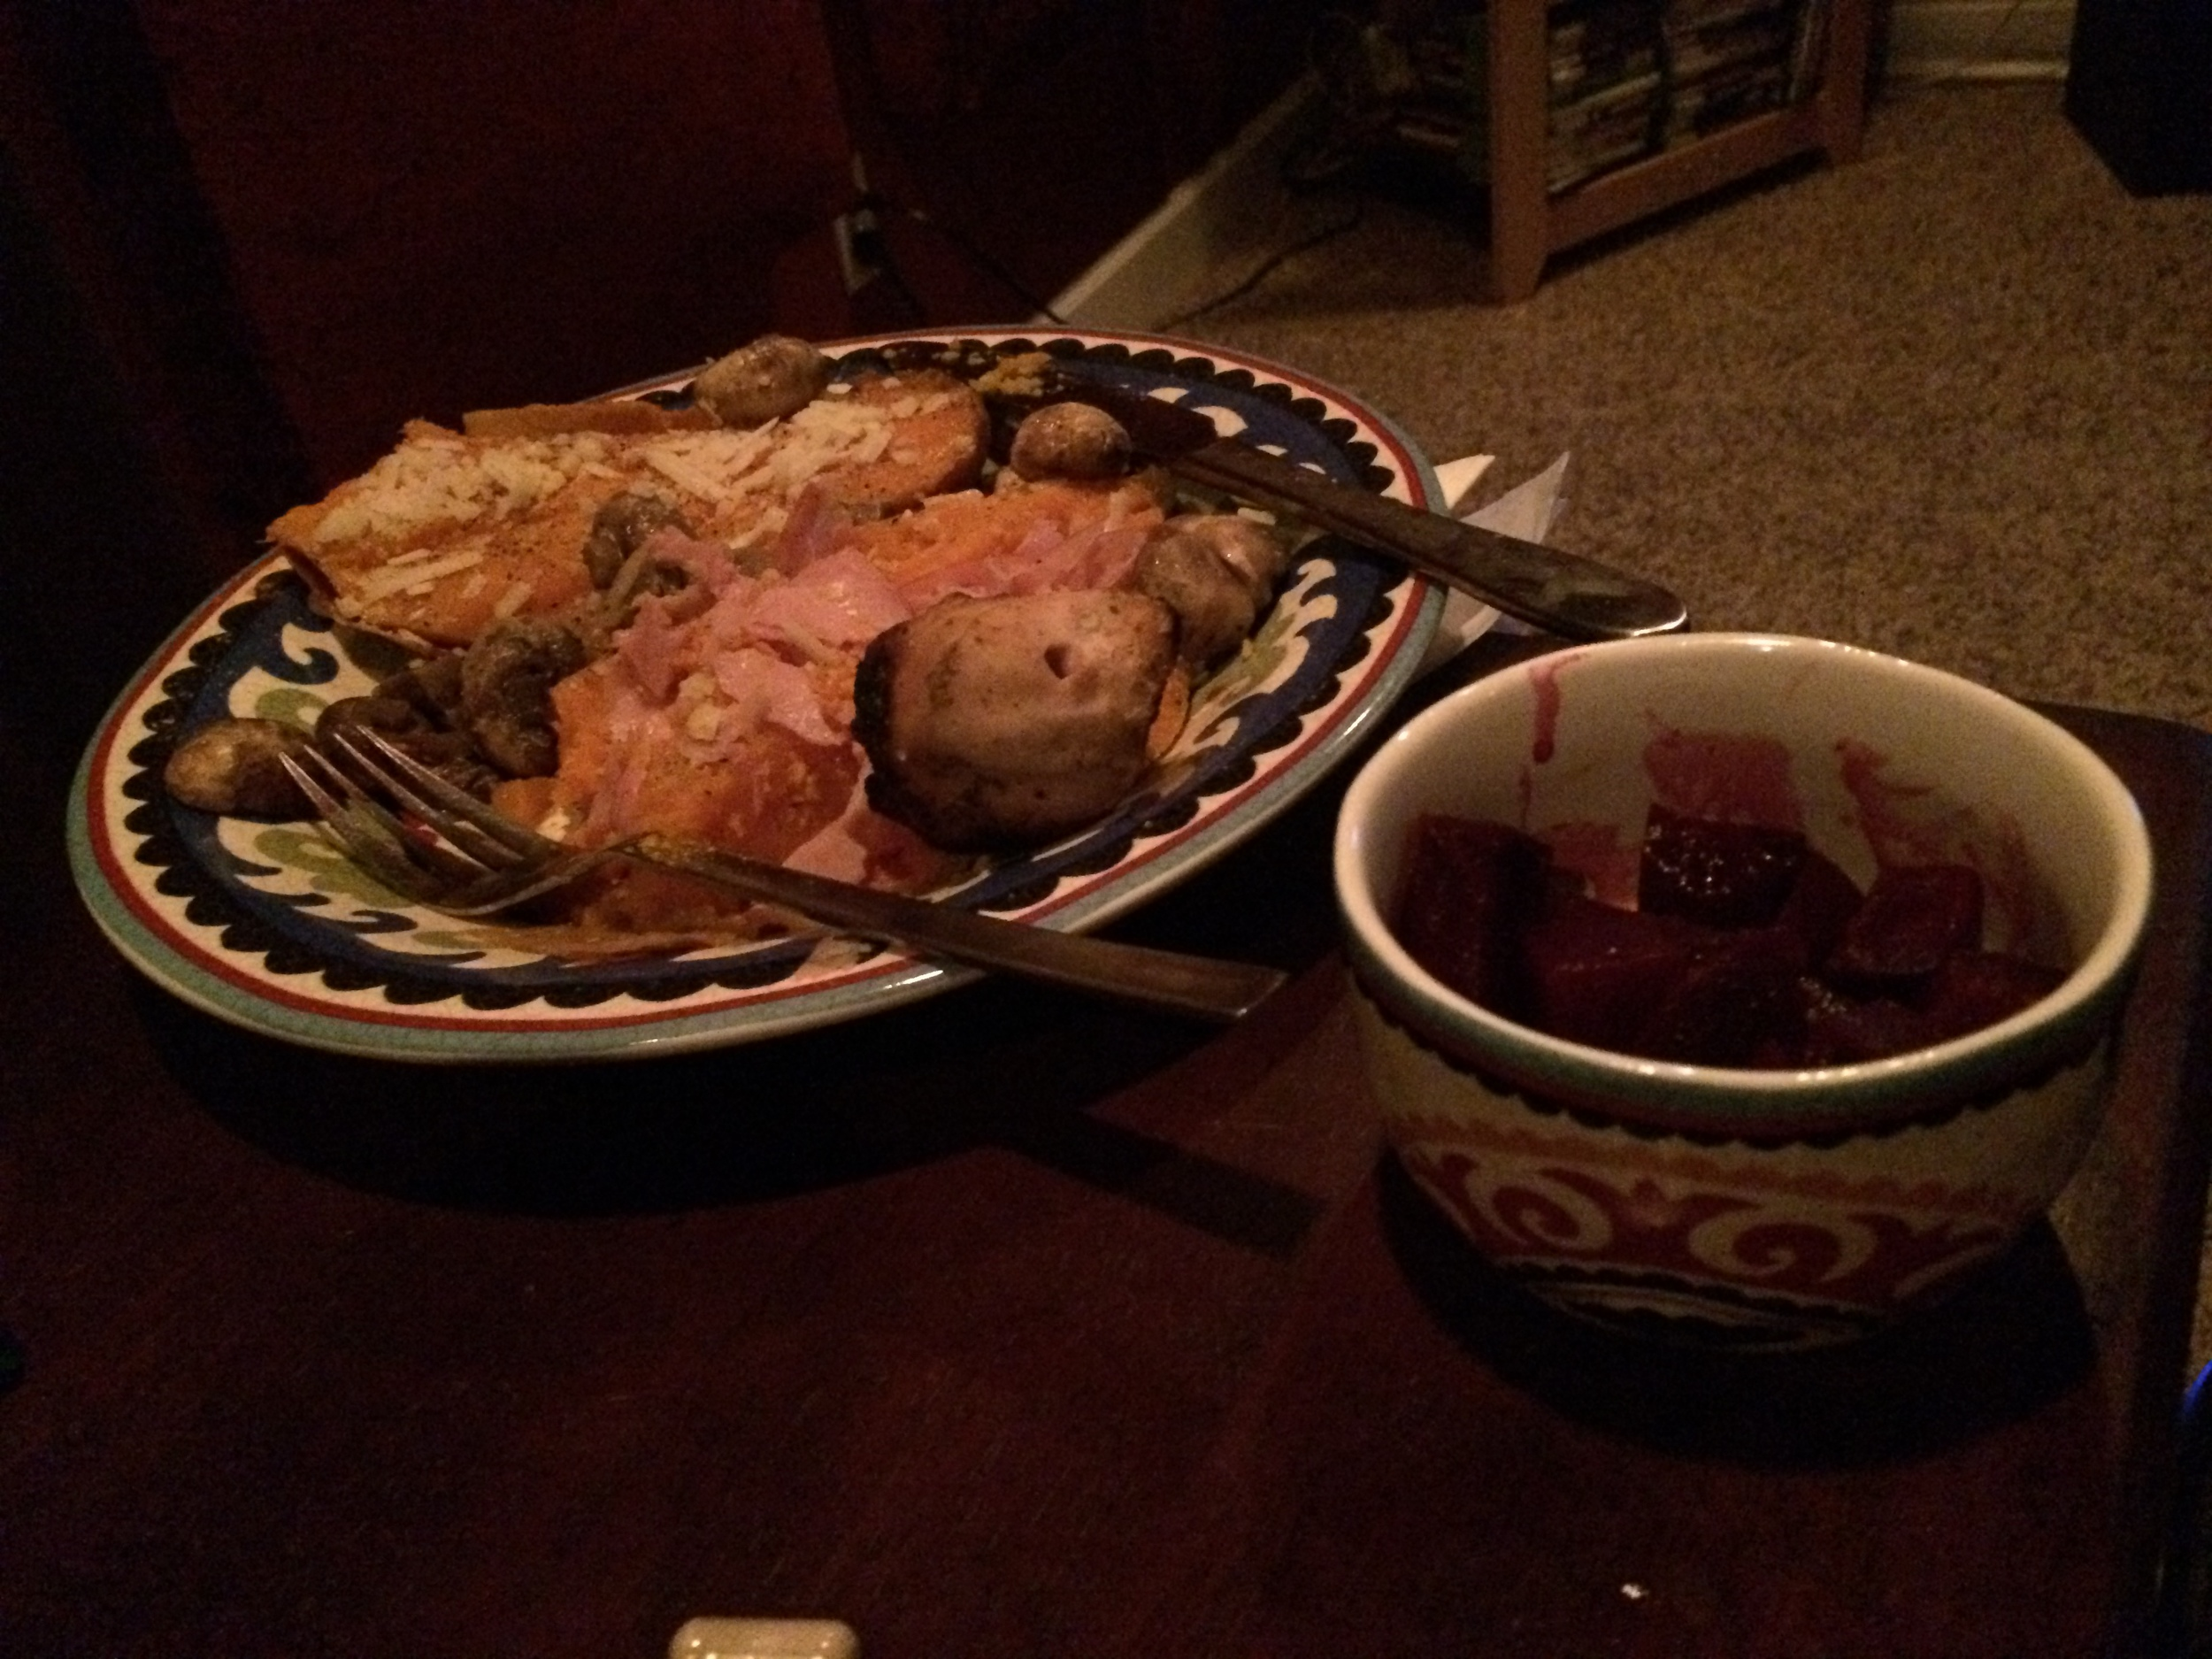 Pre-race dinner - sweet potato with MCT oil, sheep cheese, chicken, ham, grilled mushrooms and roasted beets